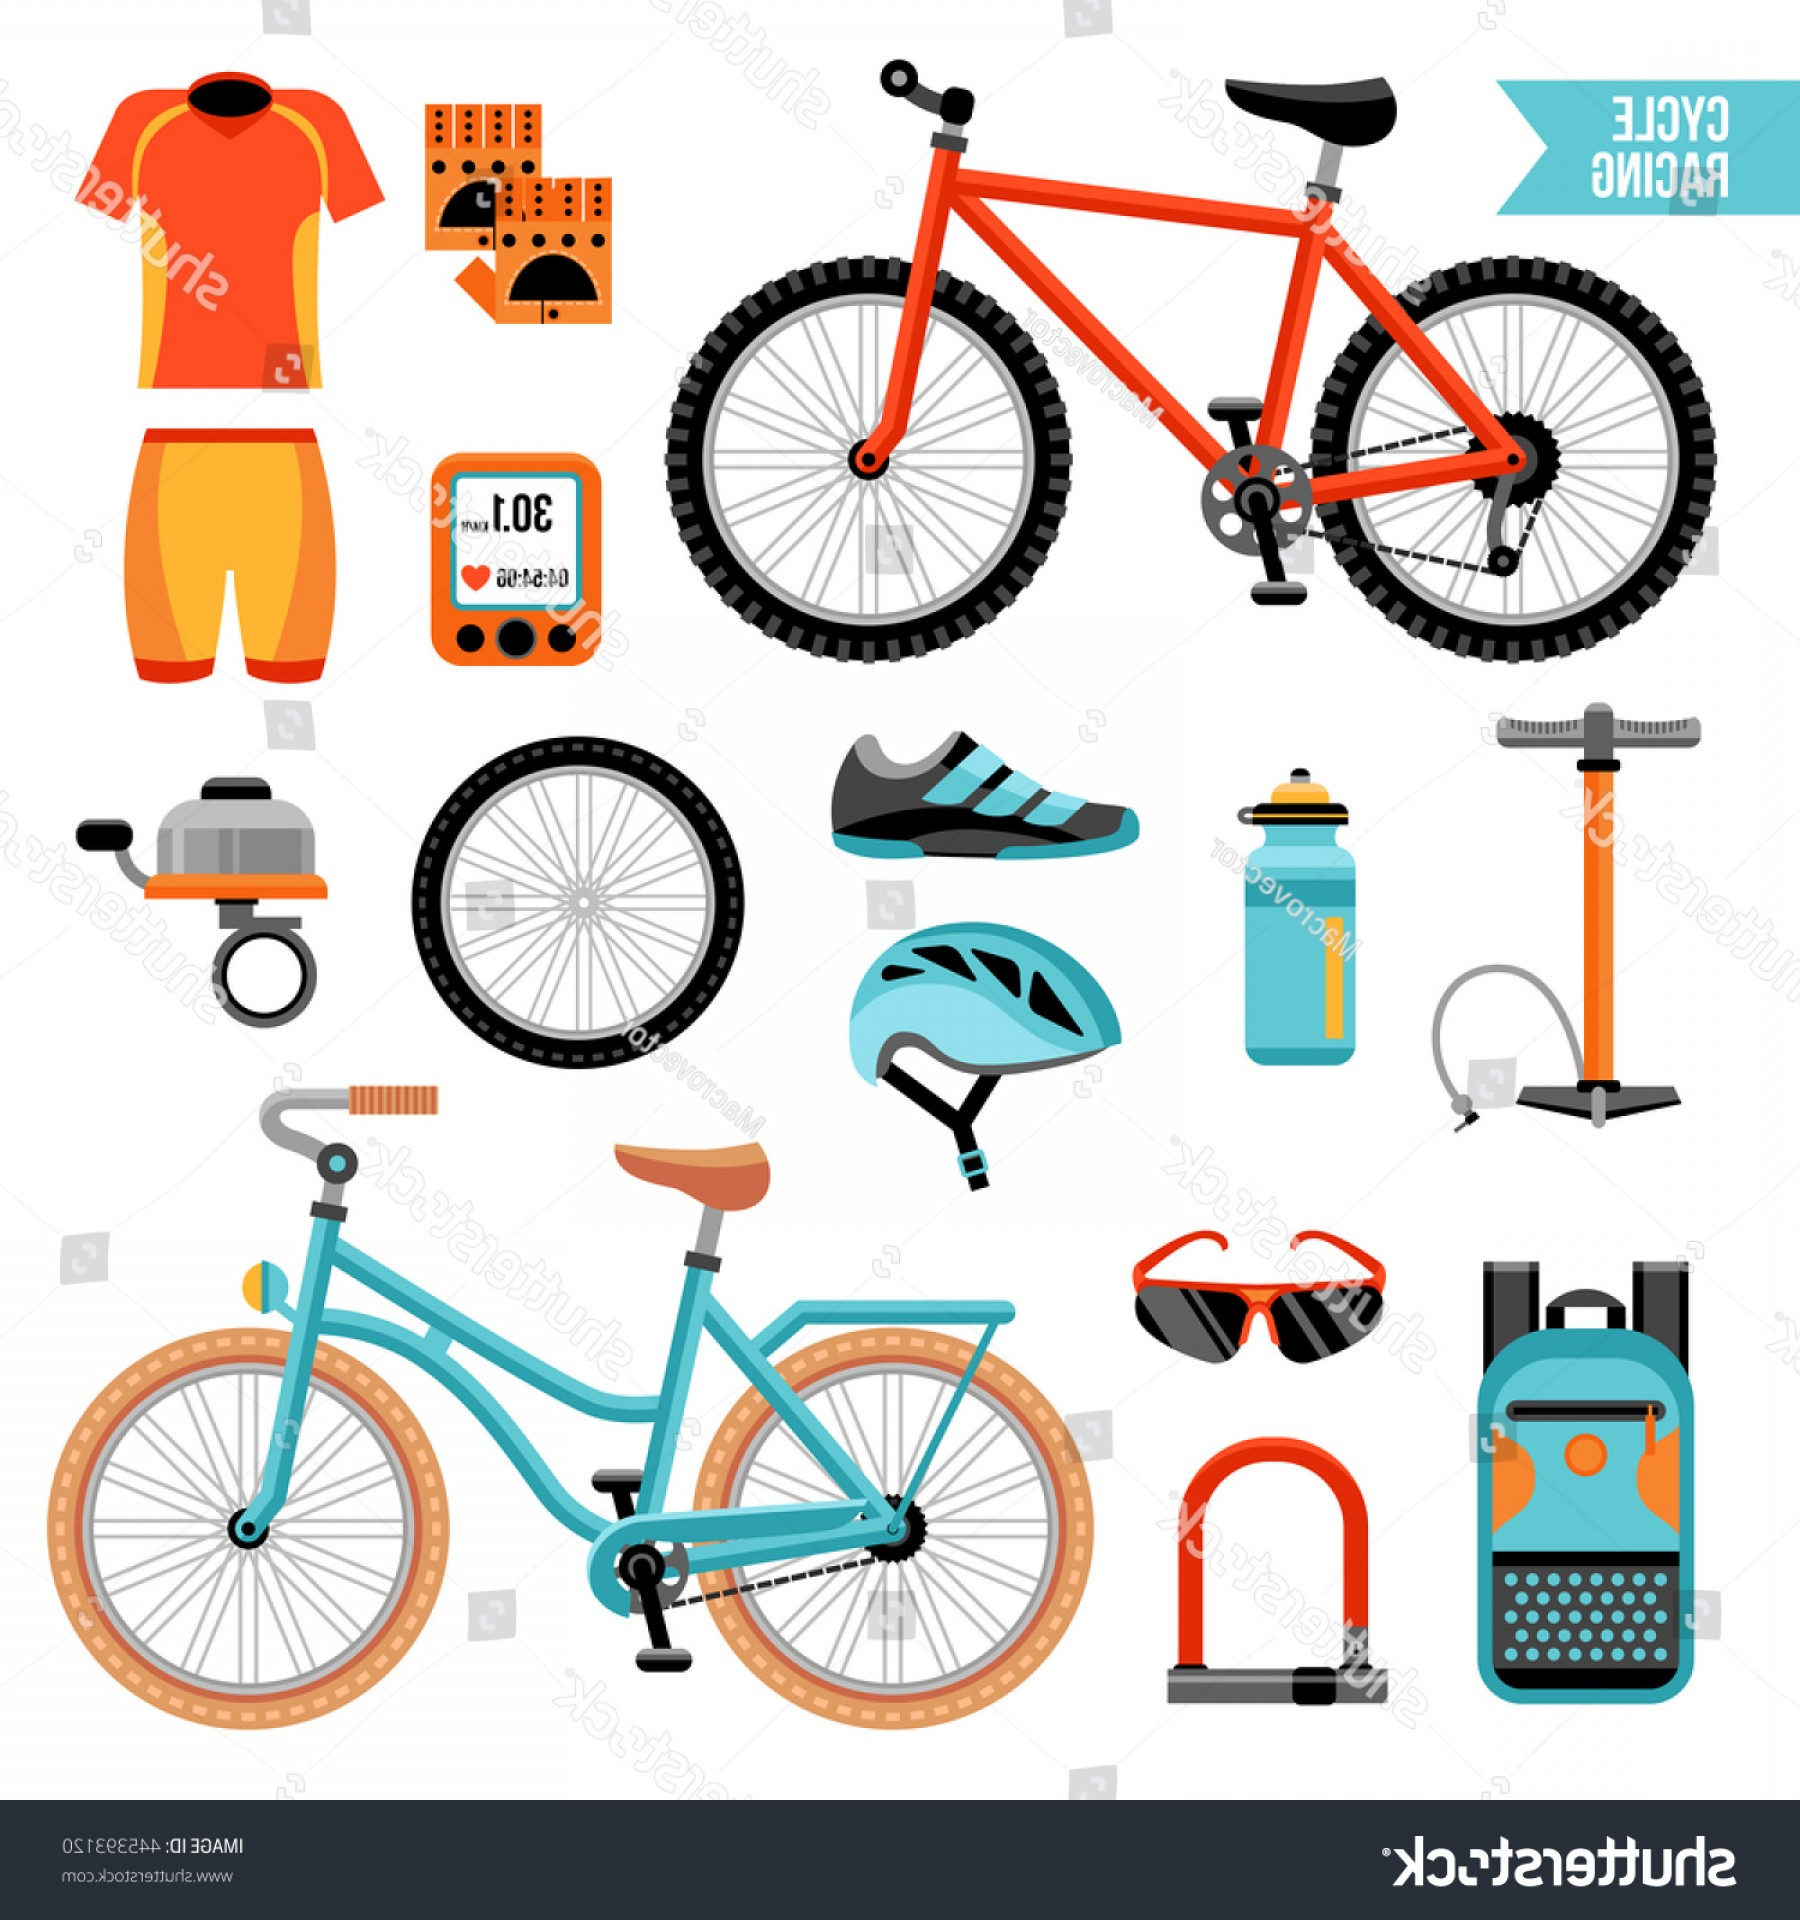 Indoor Cycling Bike Vector: Bike Cycling Accessories Colored Icons Set